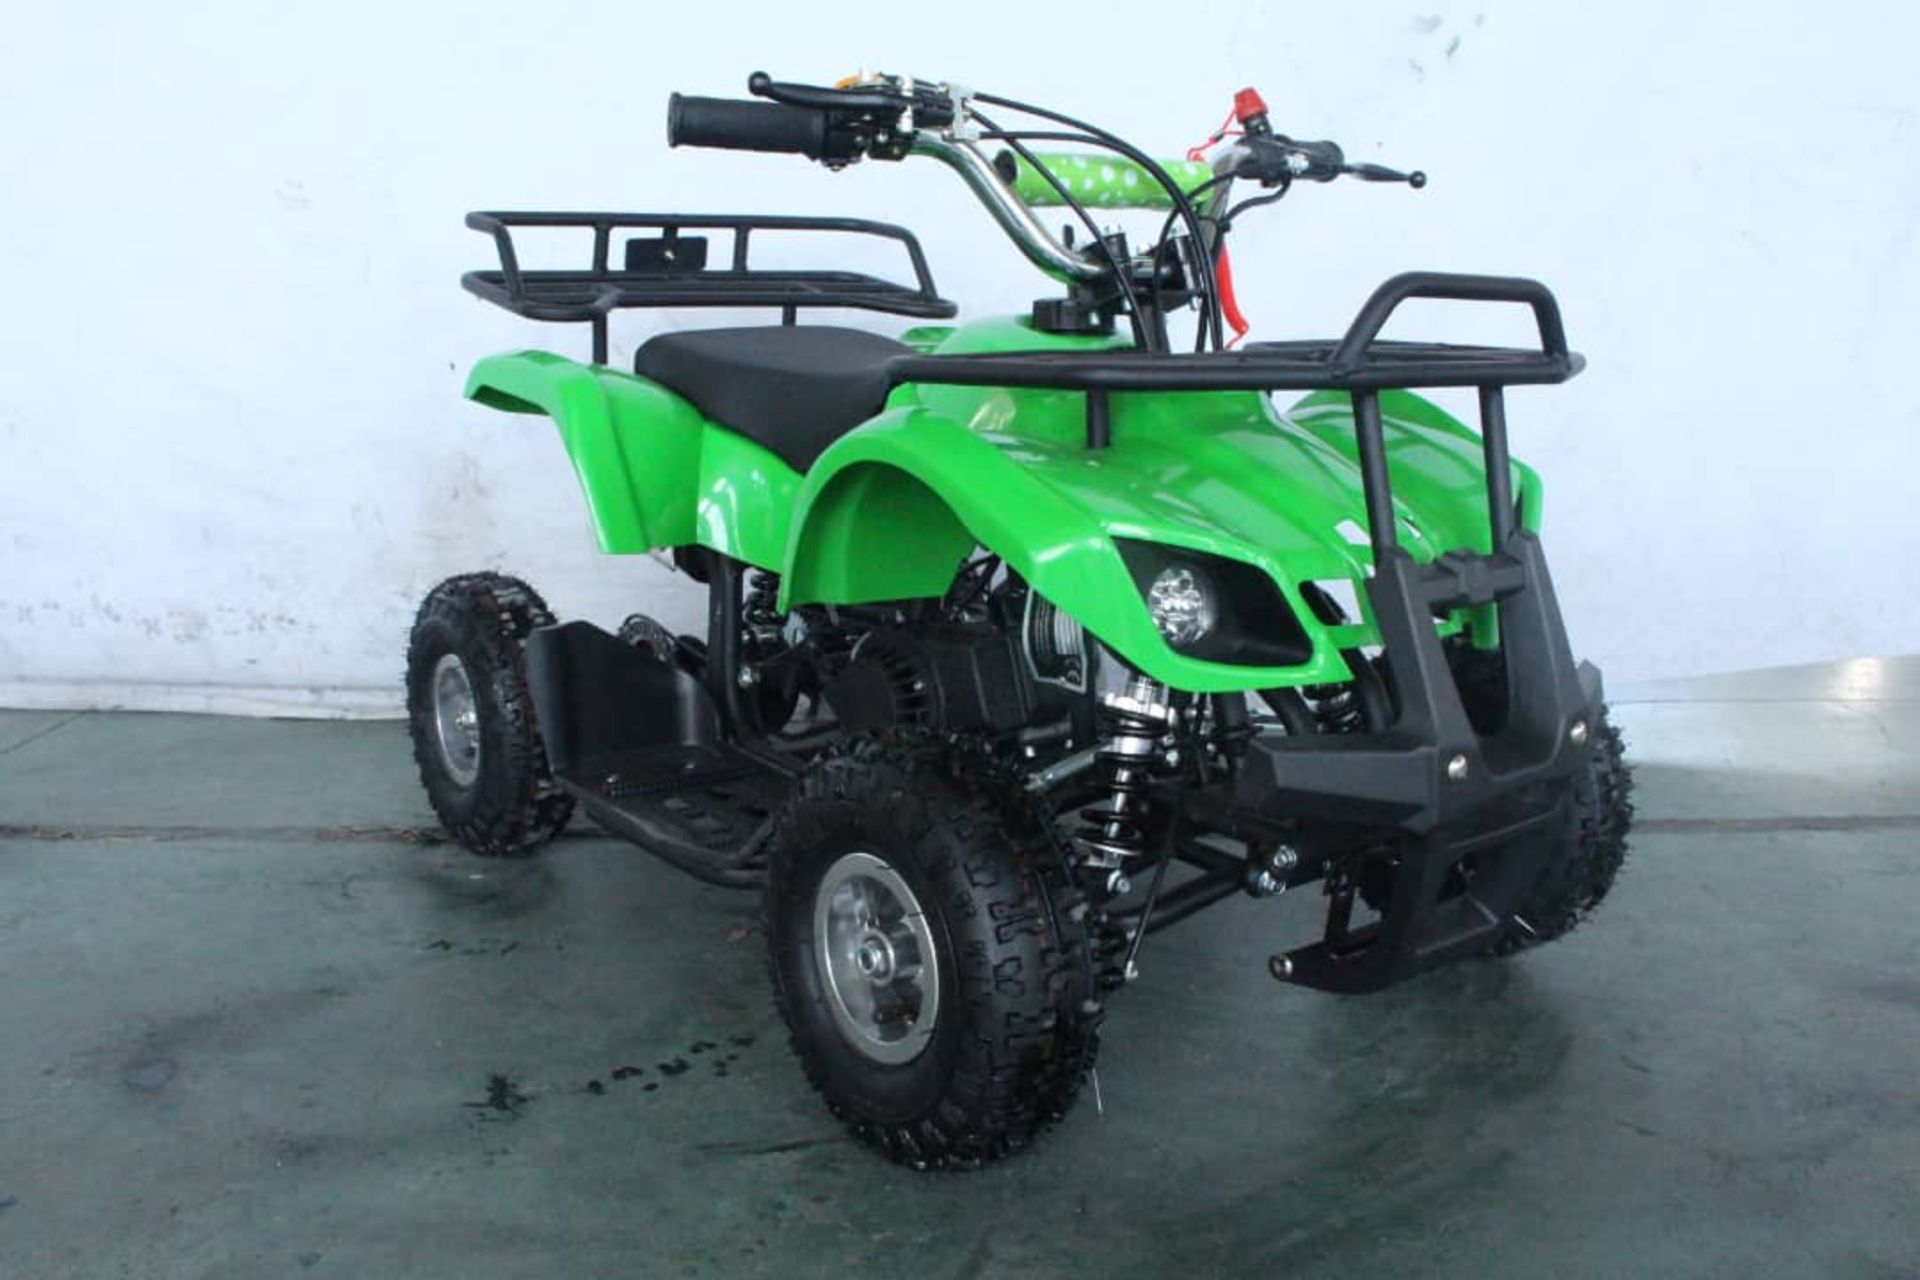 + VAT Brand New 49cc Hawk Mini Quad Bike - Colours May Vary - Full Front And Rear Suspension - Disk - Image 8 of 9